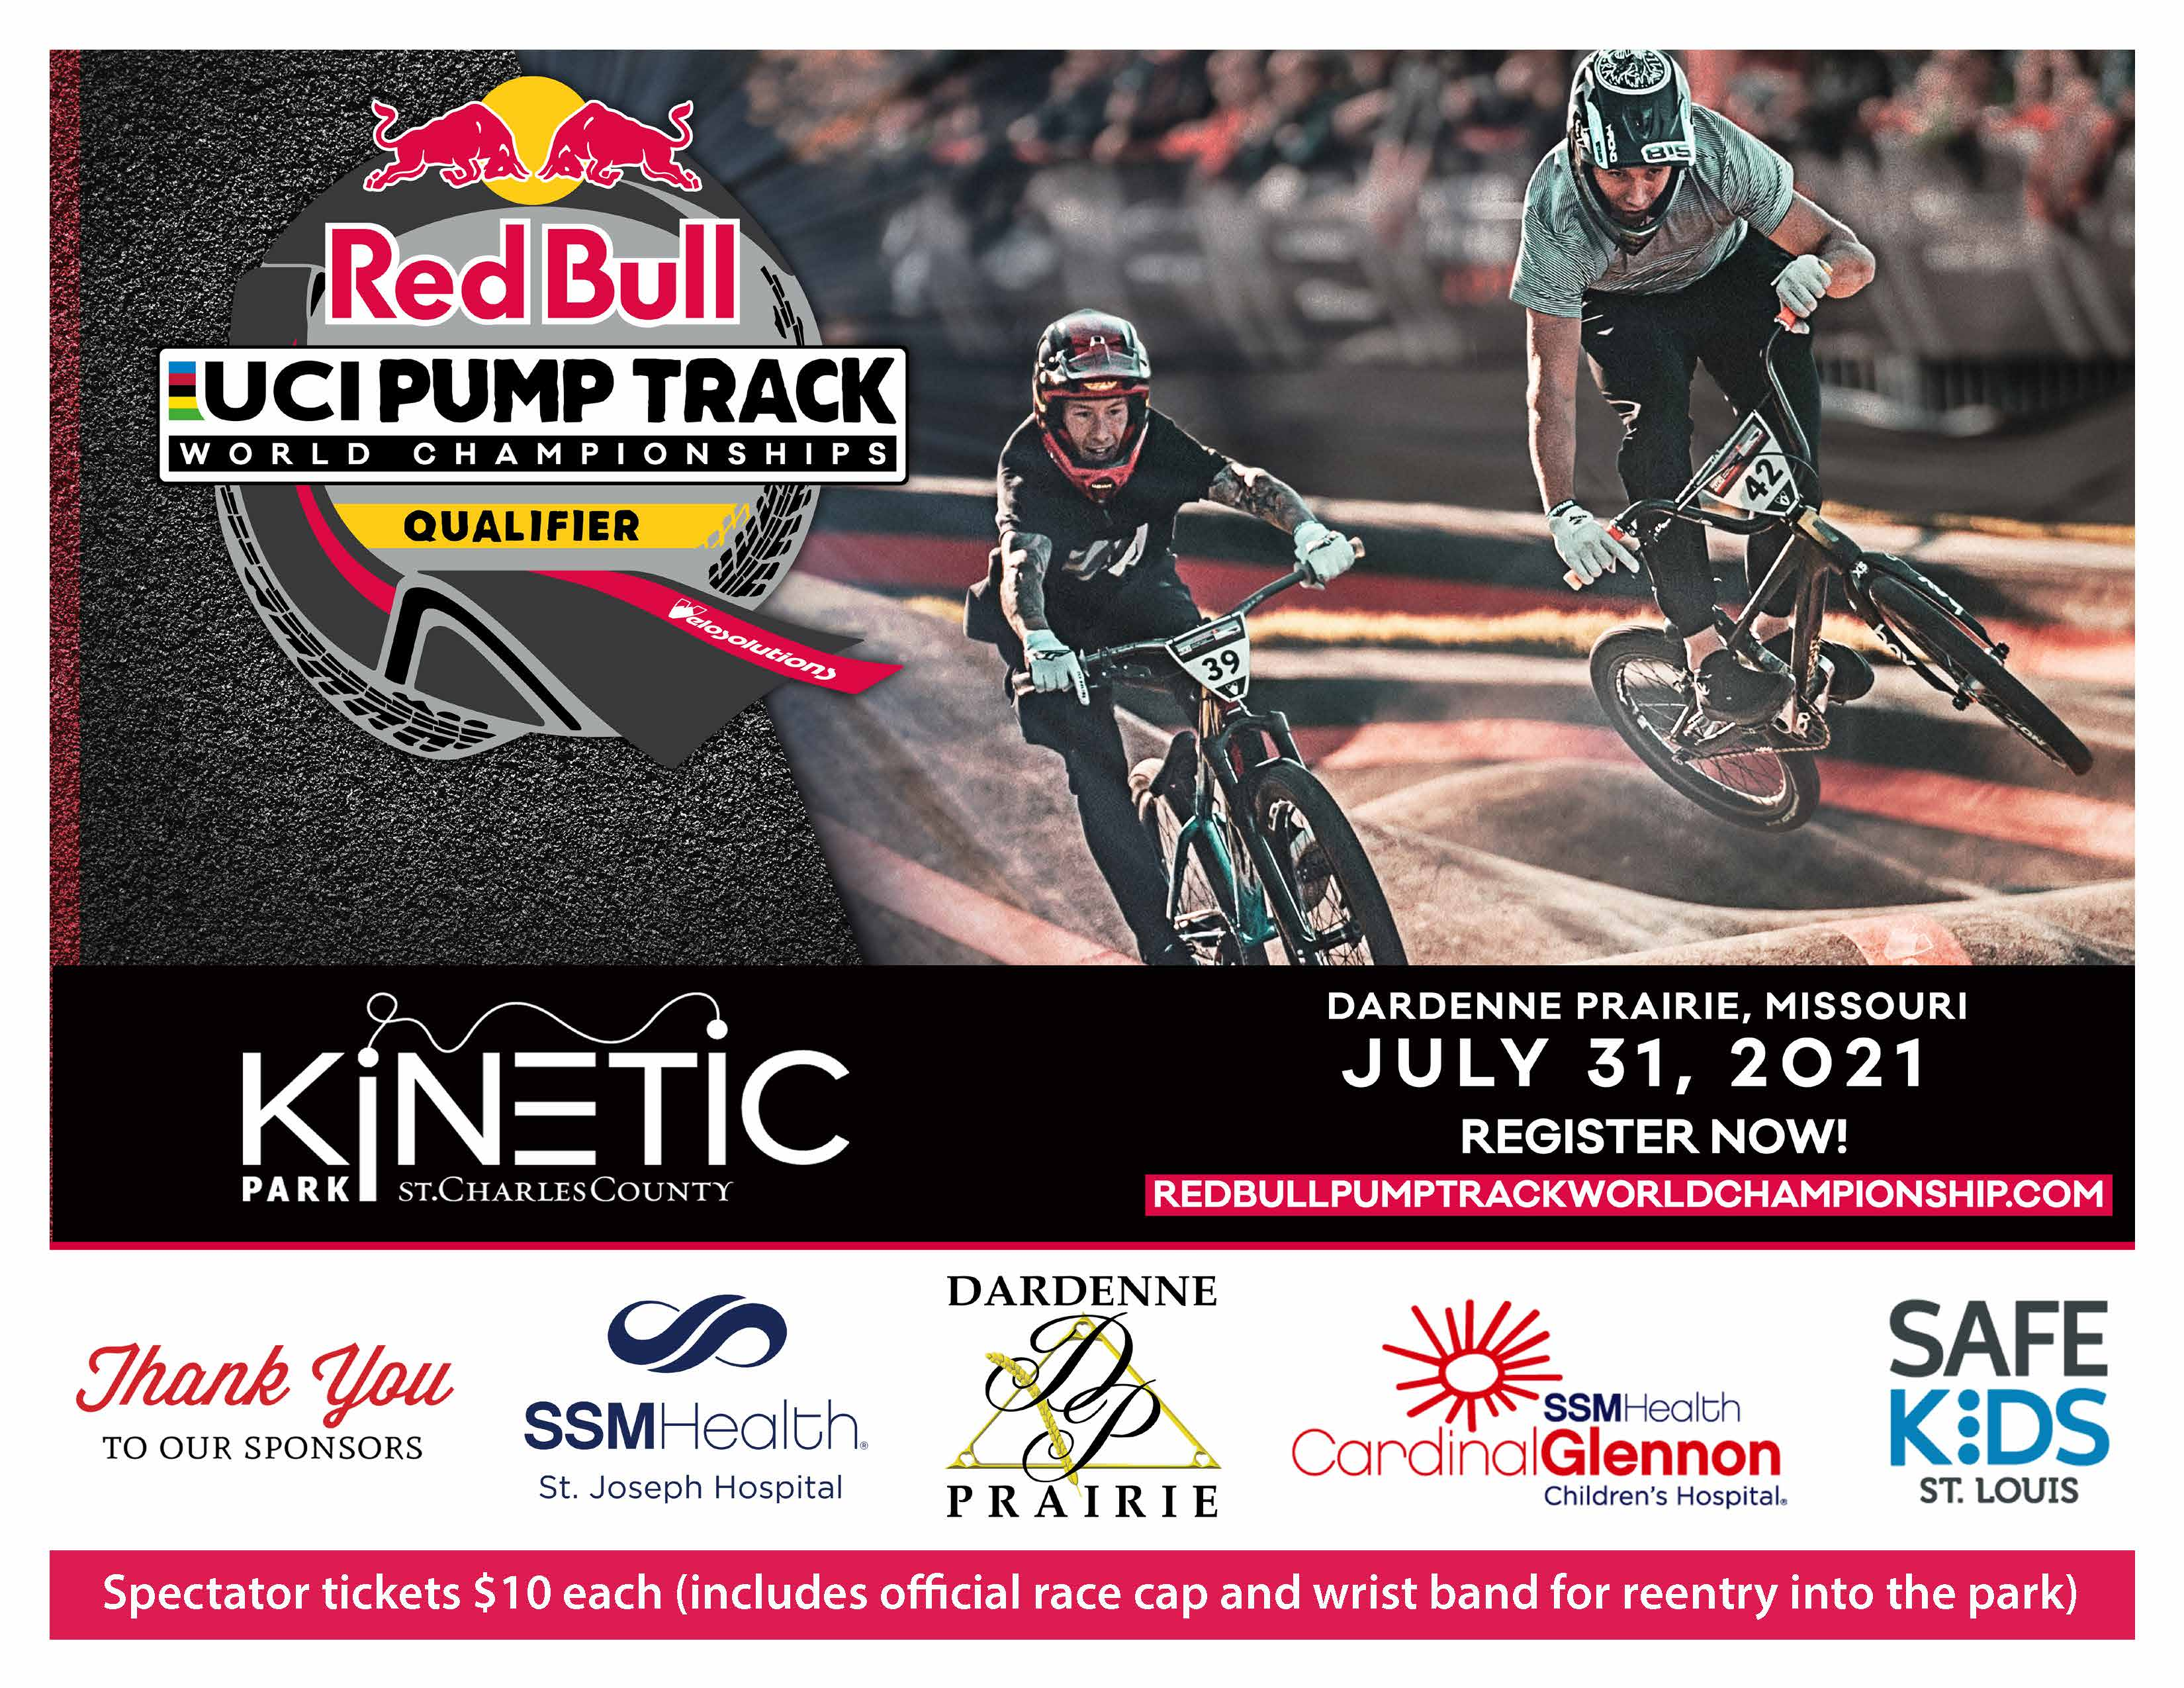 2021 Red Bull UCI Pump Track World Championships Qualifier